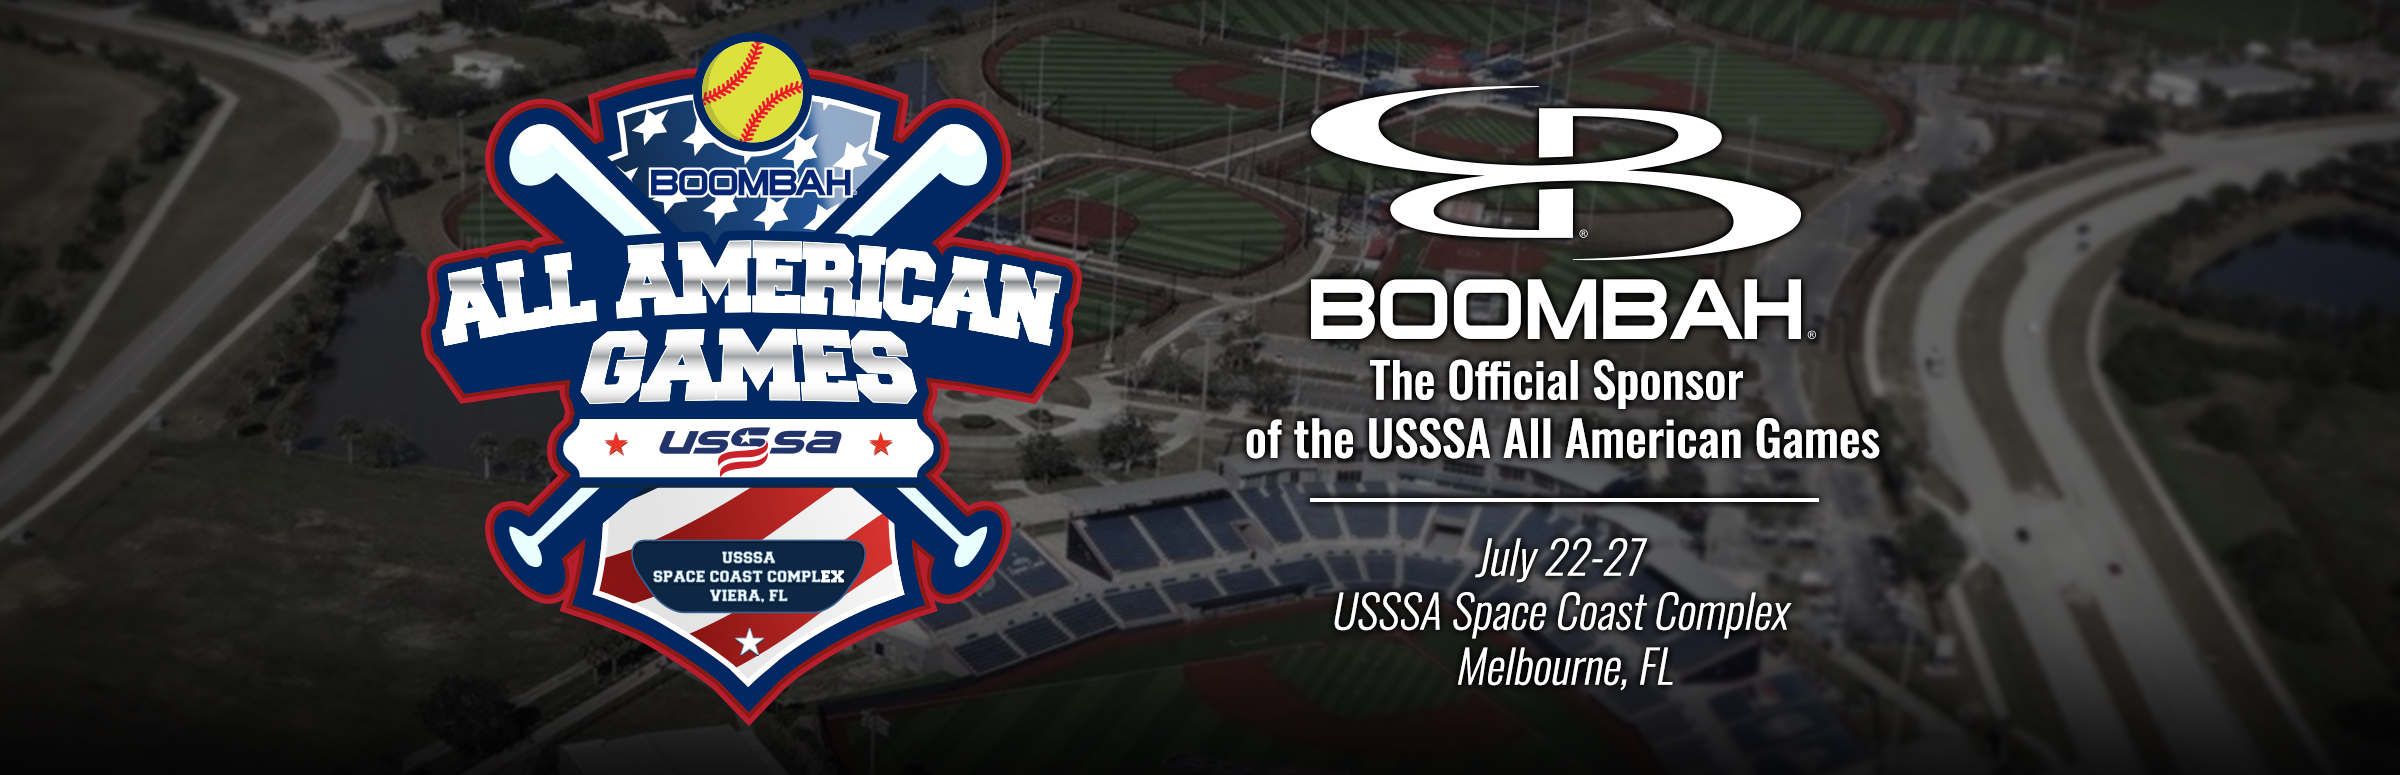 USSSA - United States Specialty Sports Association